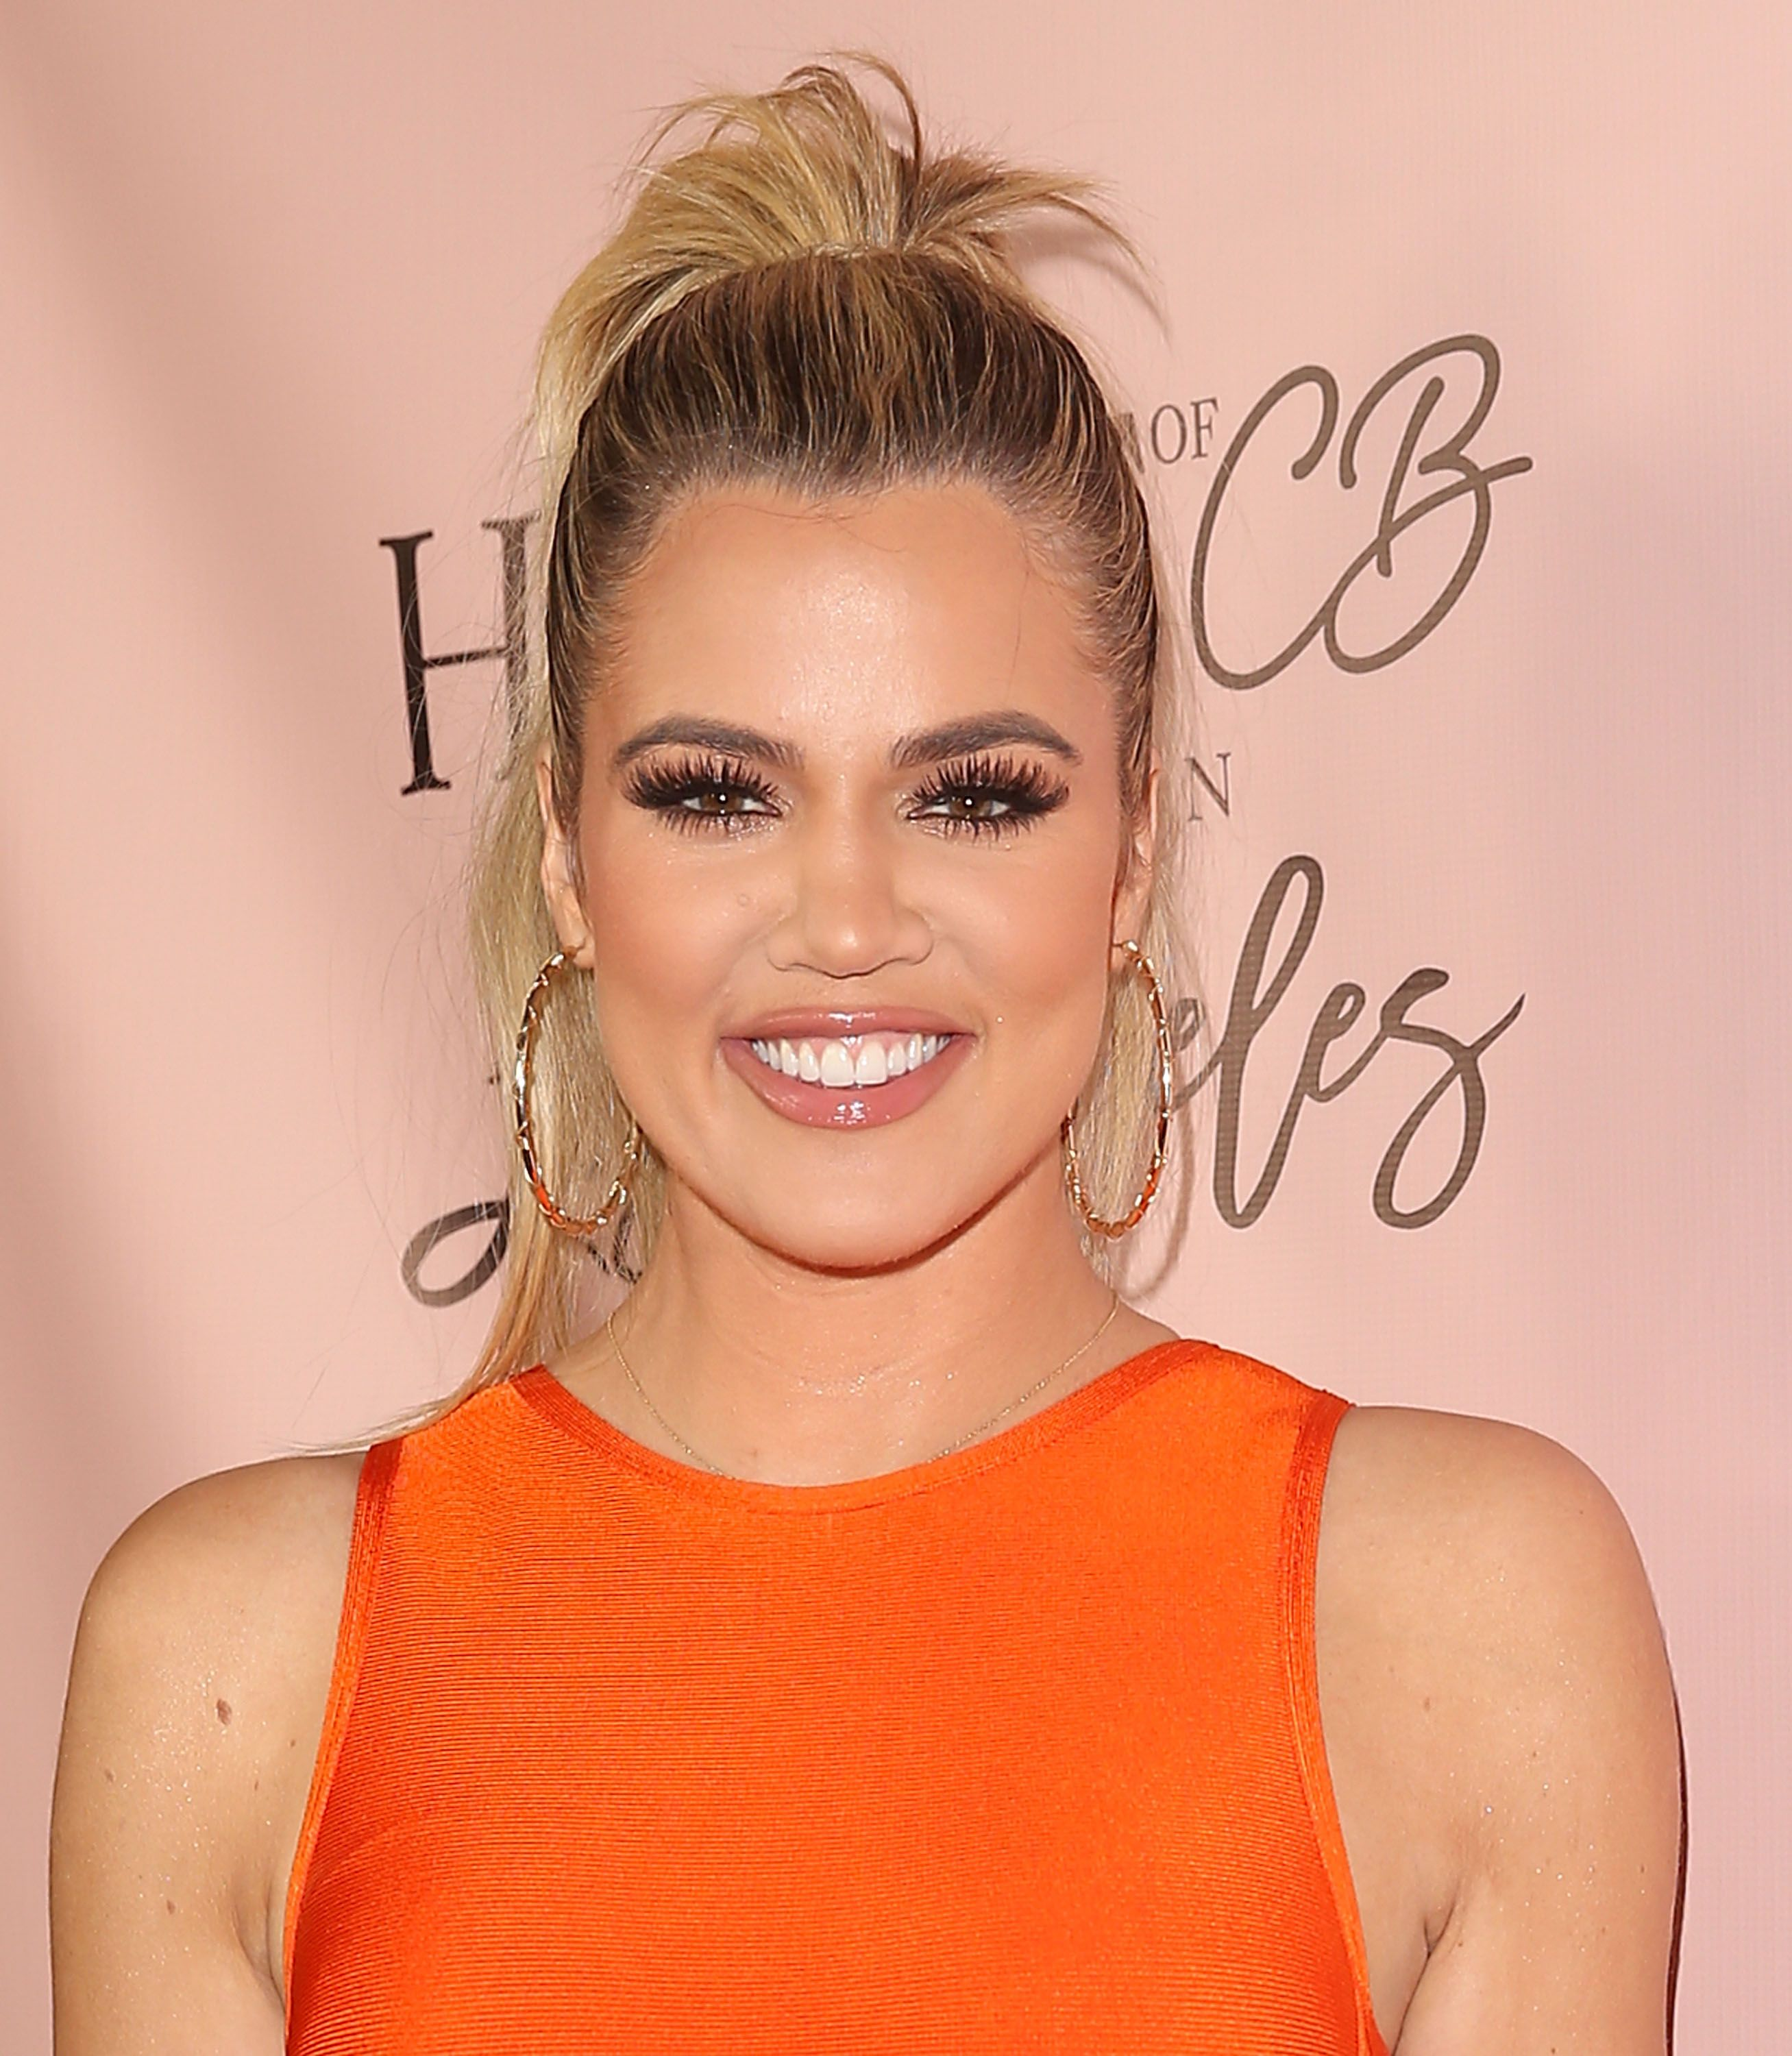 Khloe Kardashian at the House of CB Flagship Store Launch on June 14, 2016 | Photo: Getty Images